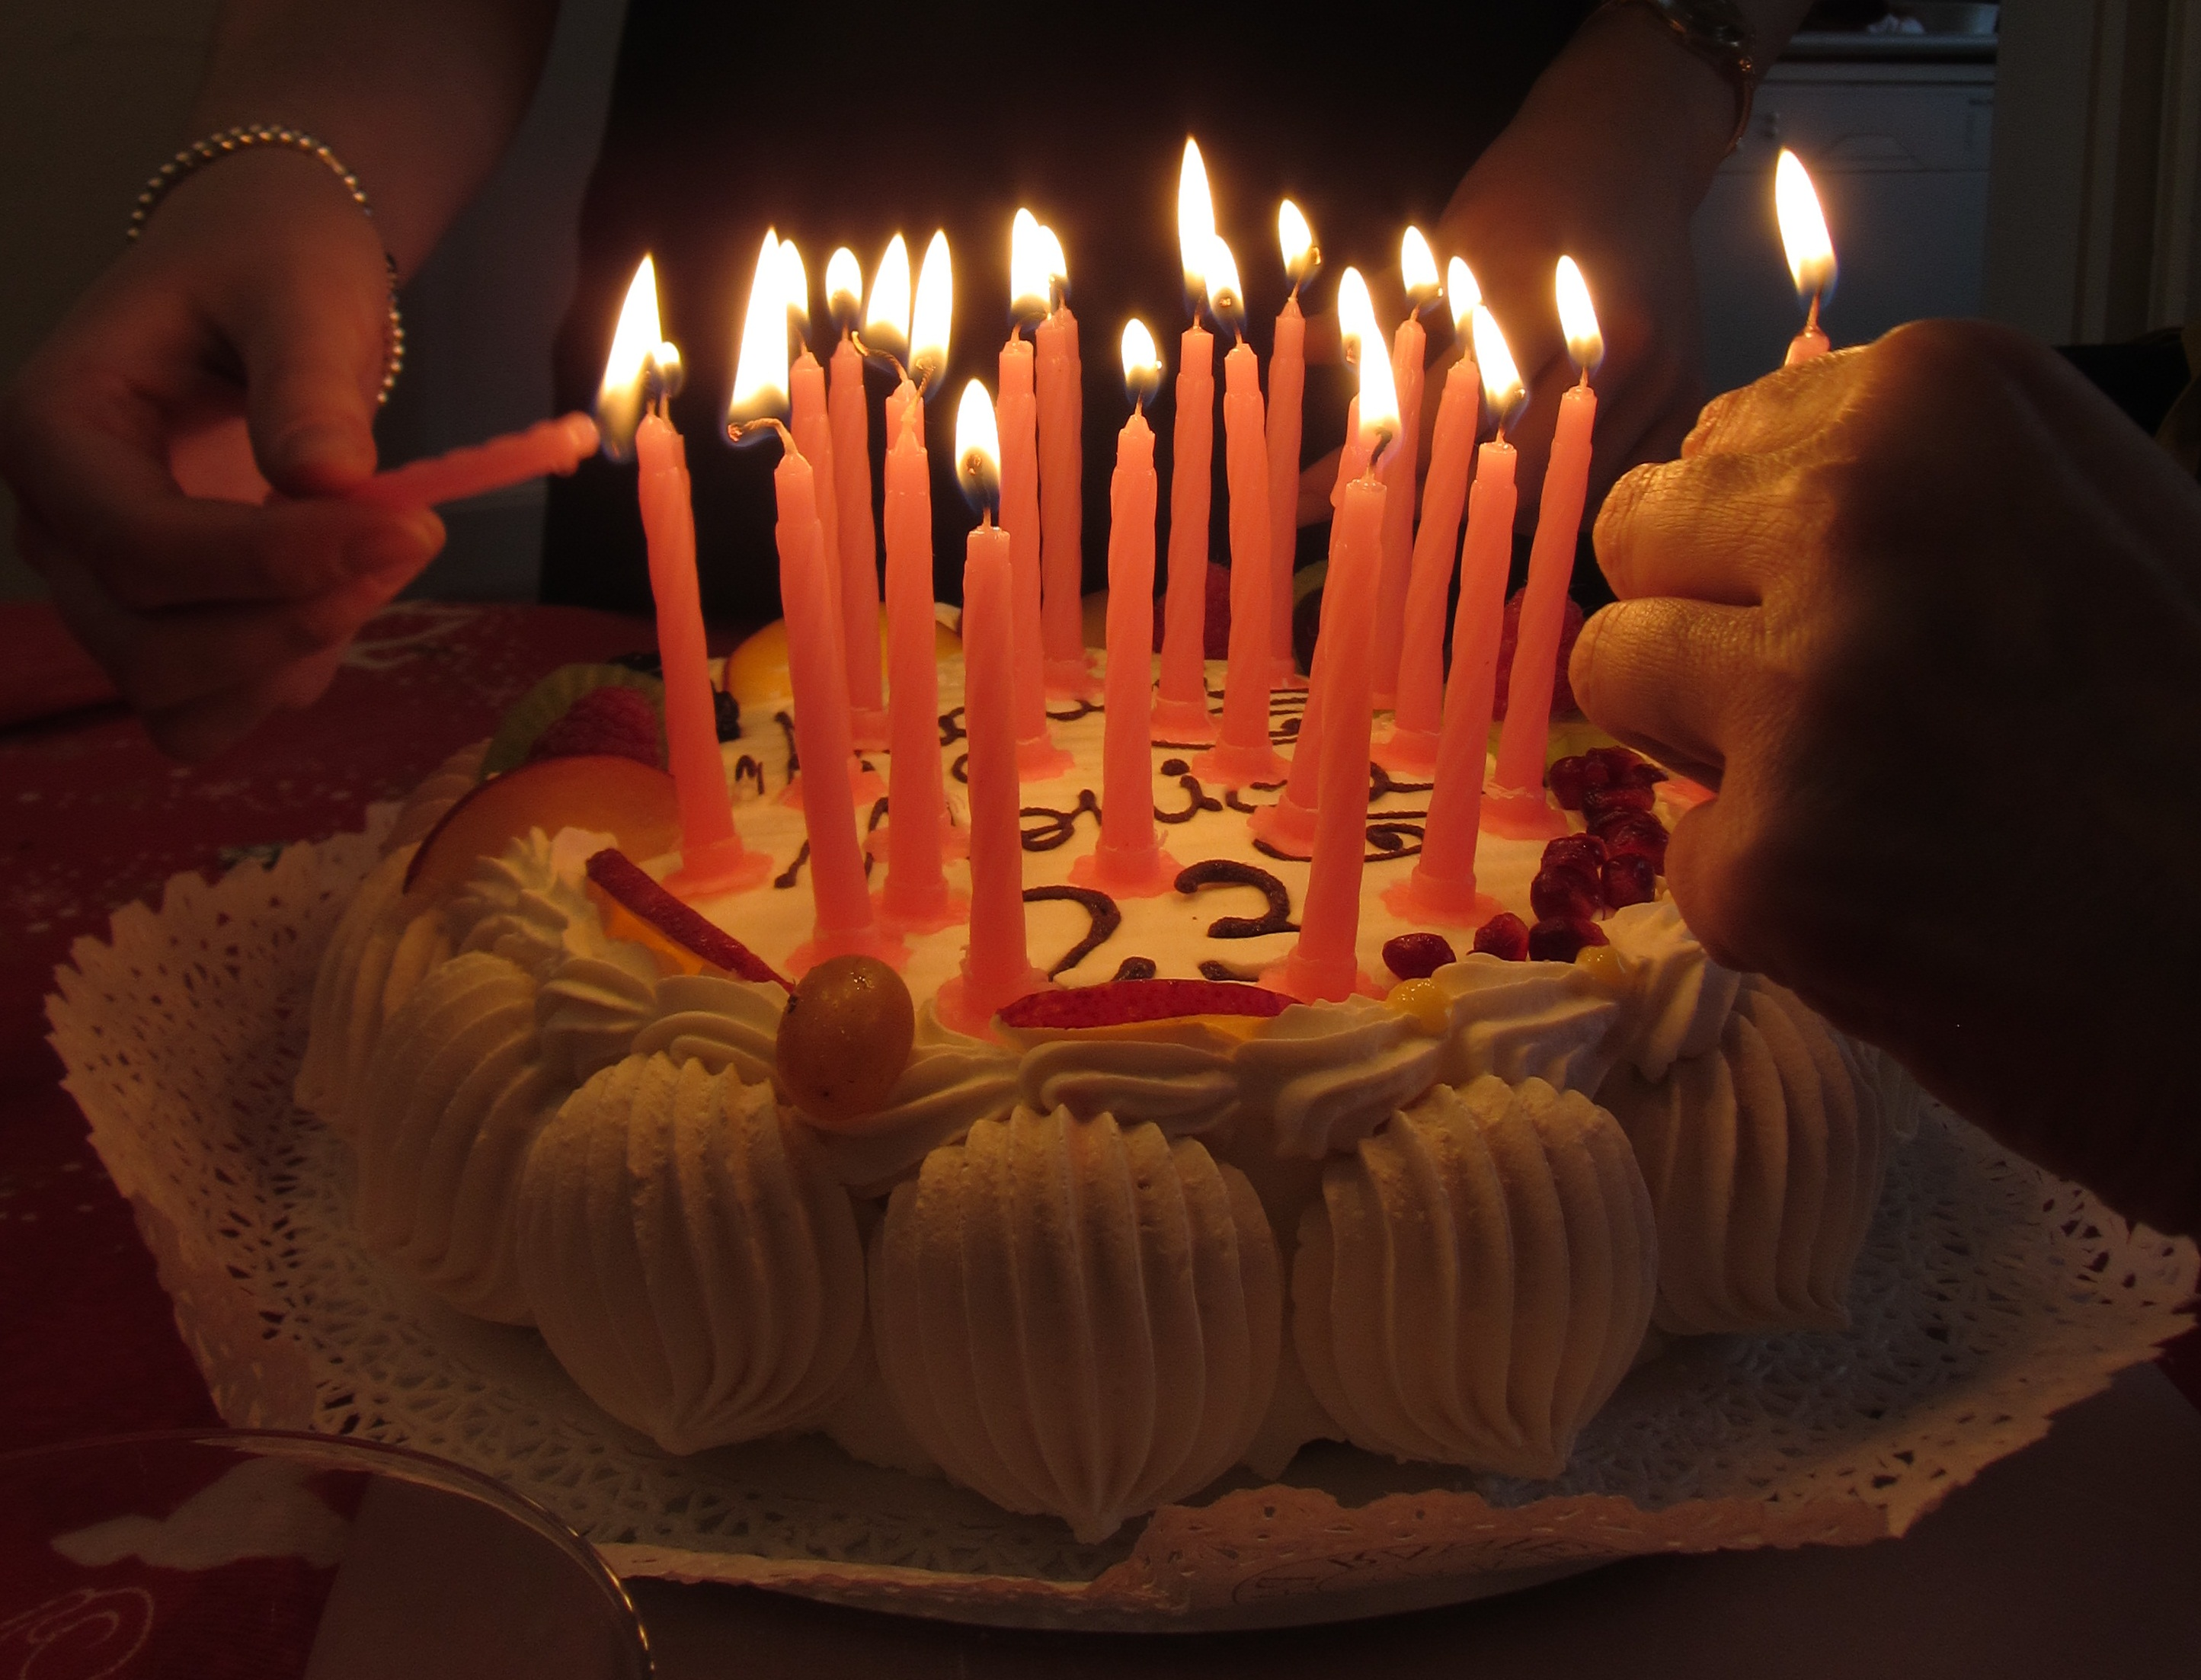 File Italy Birthday Cake With Candles 3 Jpg